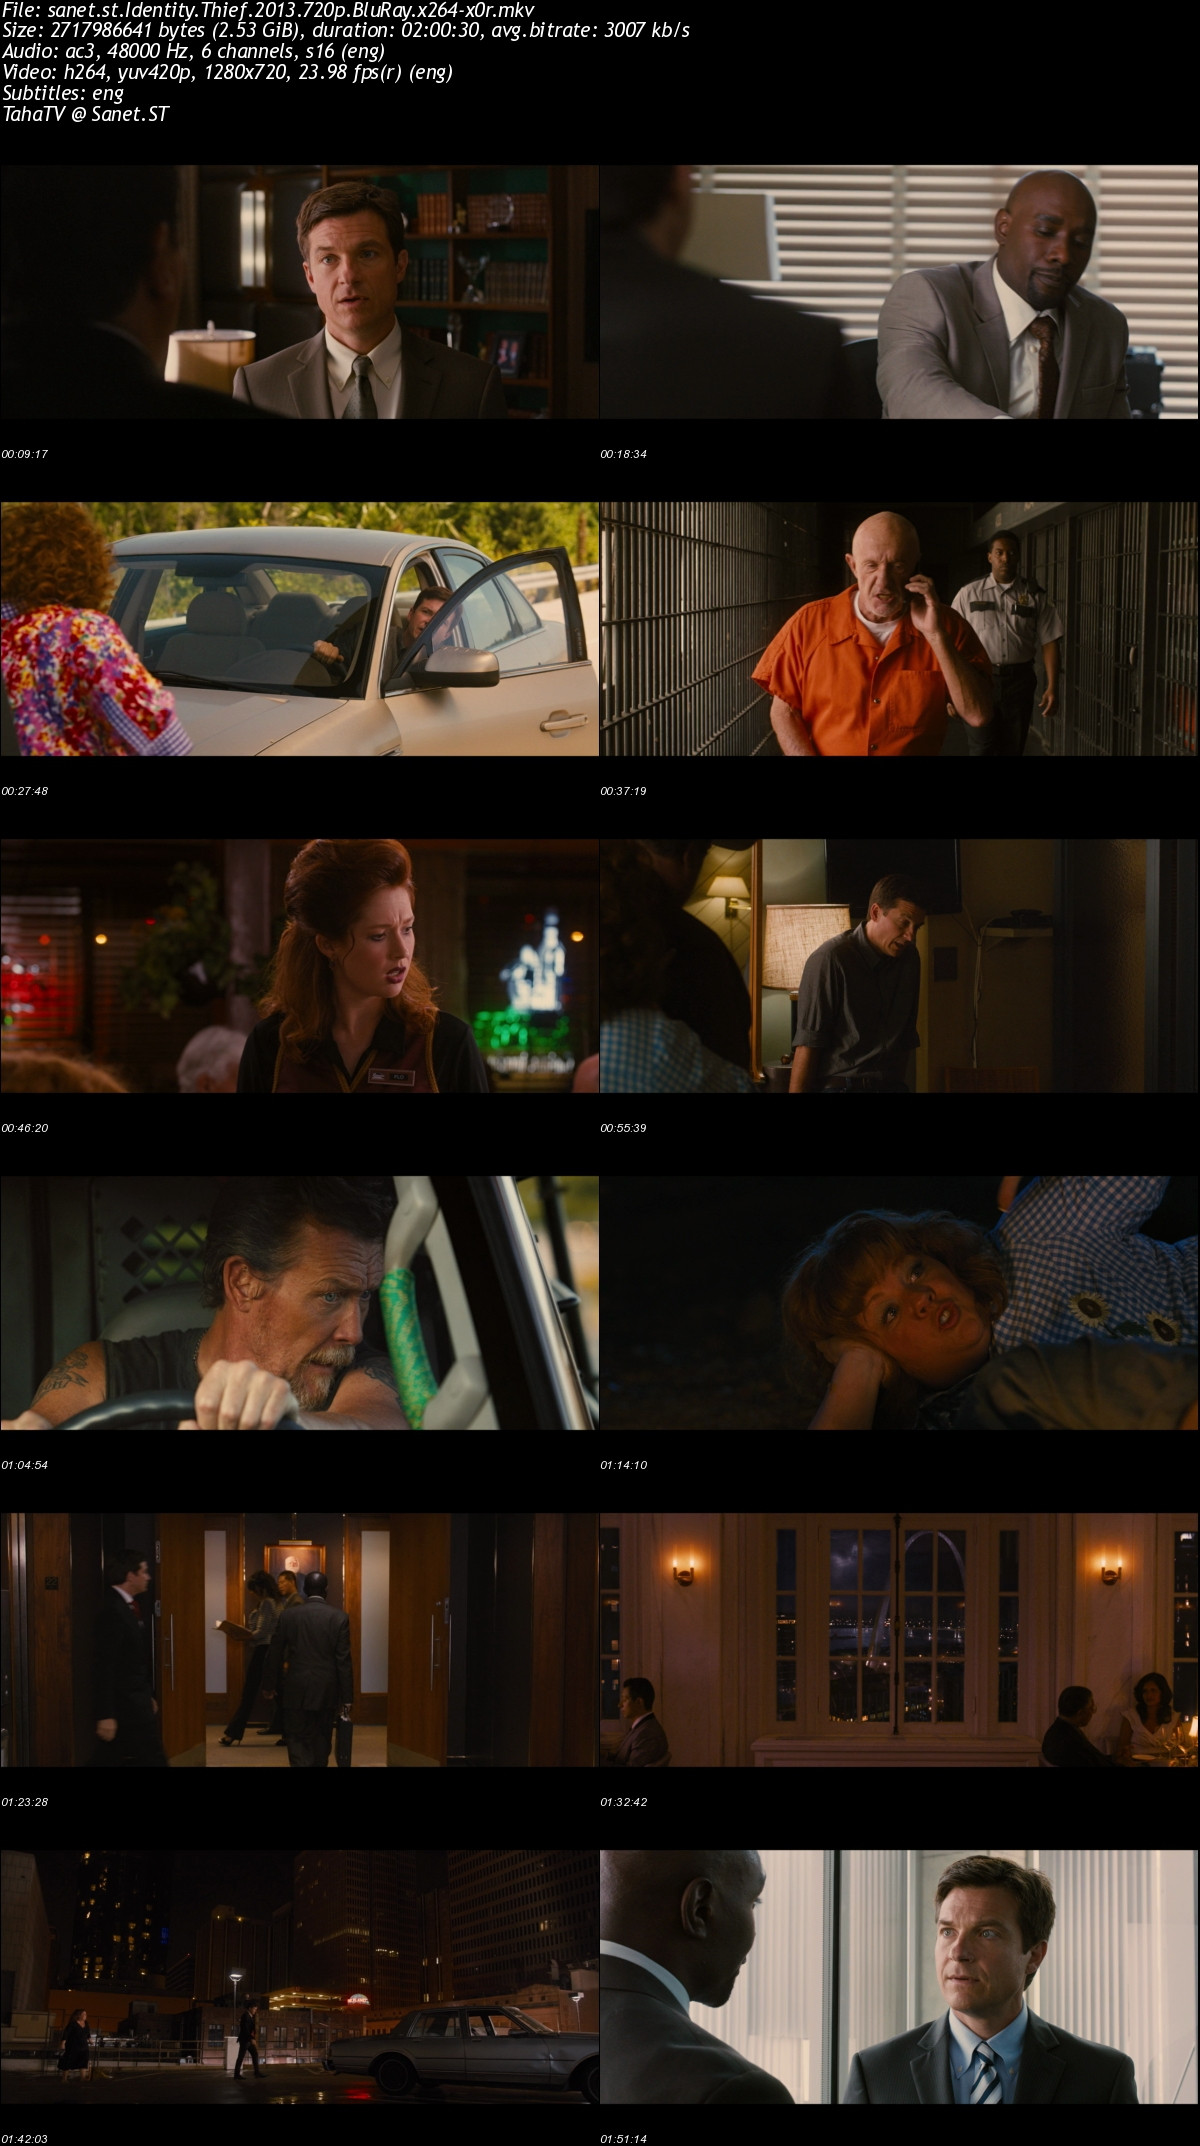 Download Identity Thief 2013 720p Bluray X264 X0r Softarchive